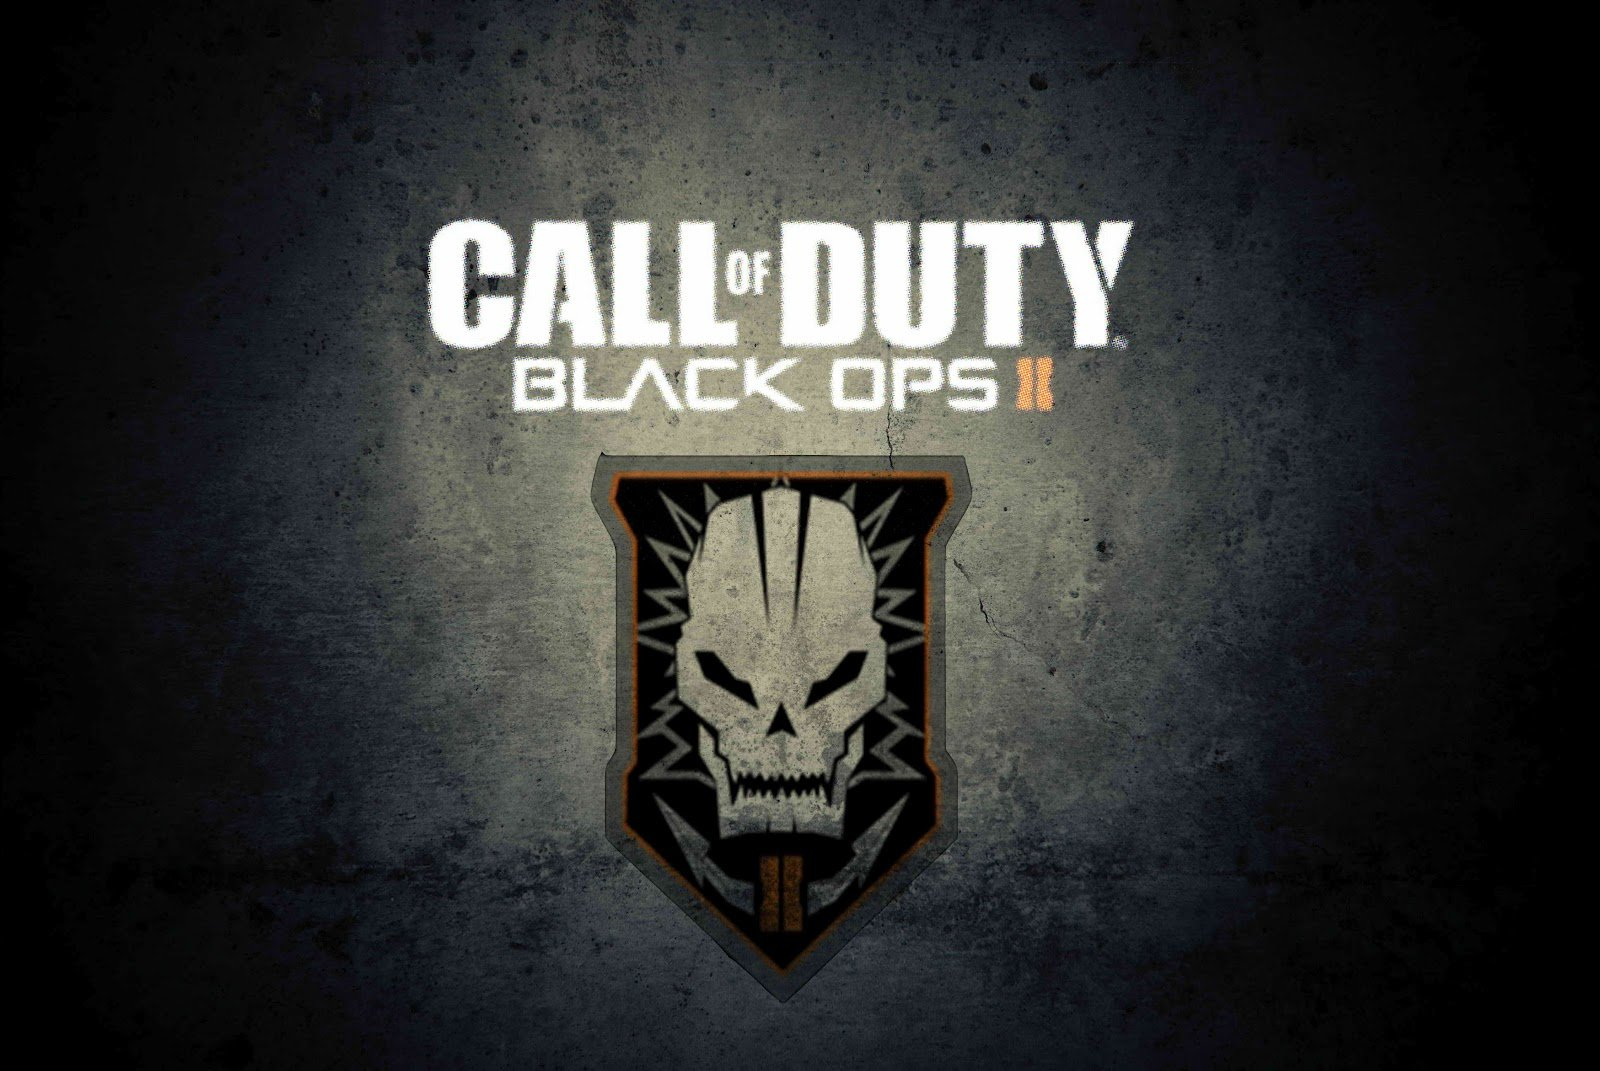 <b>Black Ops 2 wallpaper</b> by zelimper on DeviantArt